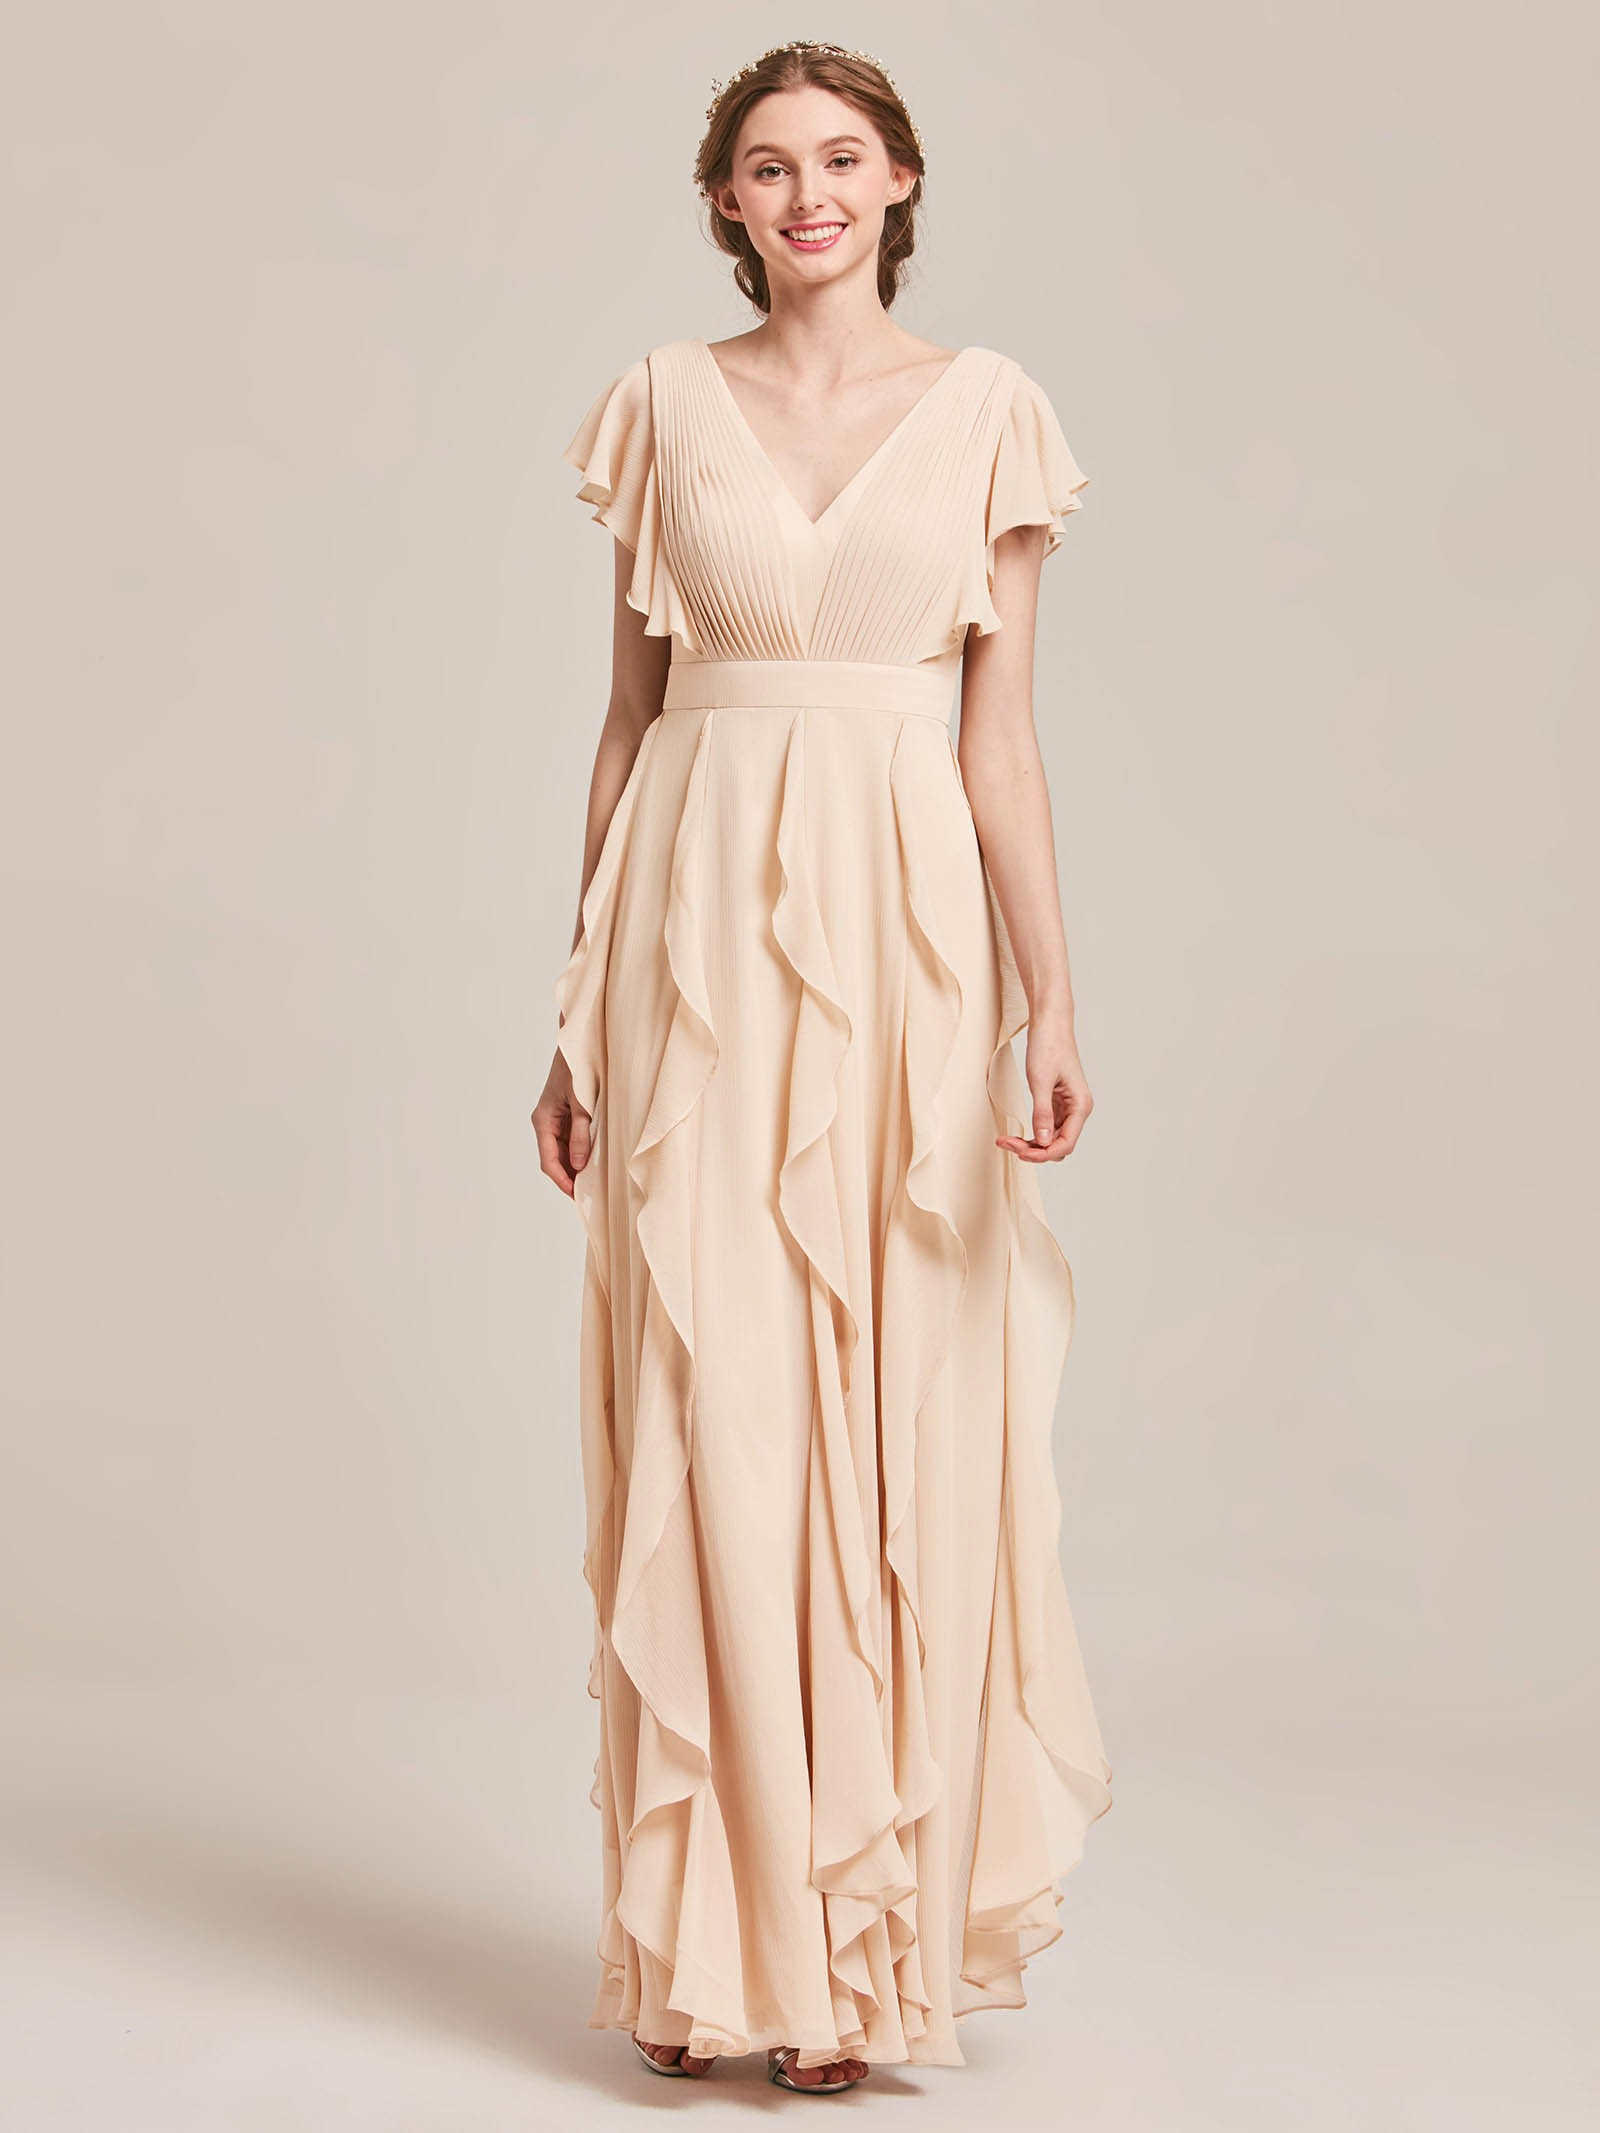 Alfreda Butterfly Sleeves V-Neck Bridesmaid Dress with Ruffles